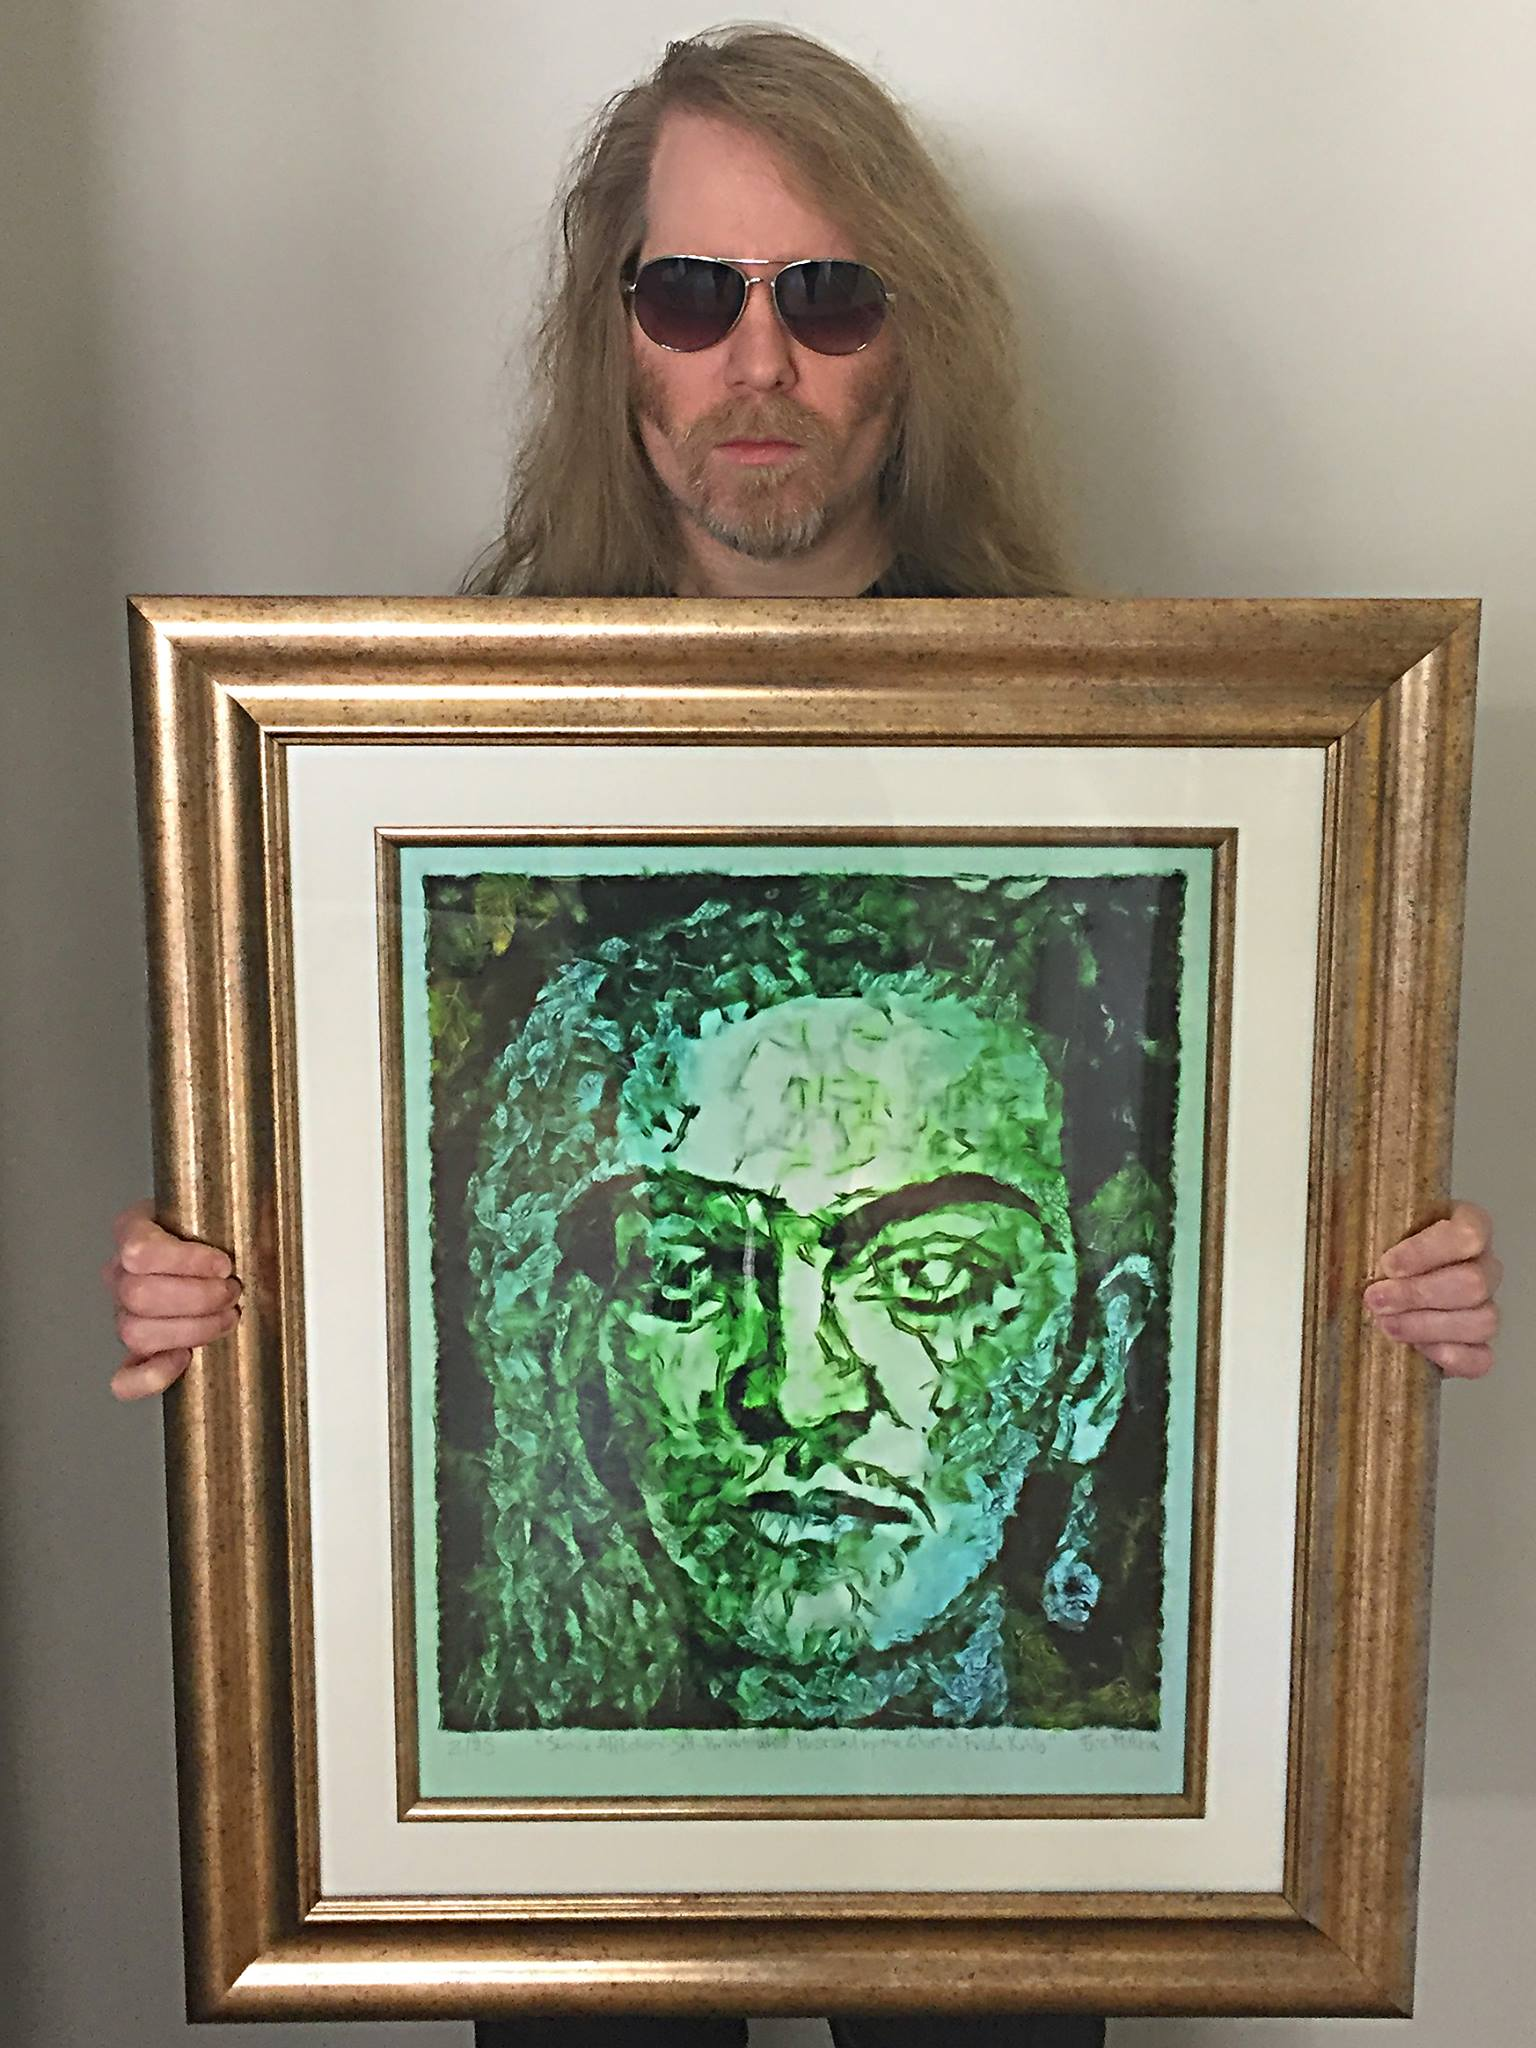 "My "" Séance Affliction :  Self-Portrait While Possessed by the Ghost of Frida Kahlo"" was included in the CHASING GHOSTS E  xhibition at the Verum Ultimum Art Gallery in Portland Oregon, and in the DAMNED Art Show at the Tangent Gallery in Detroit, Michigan."